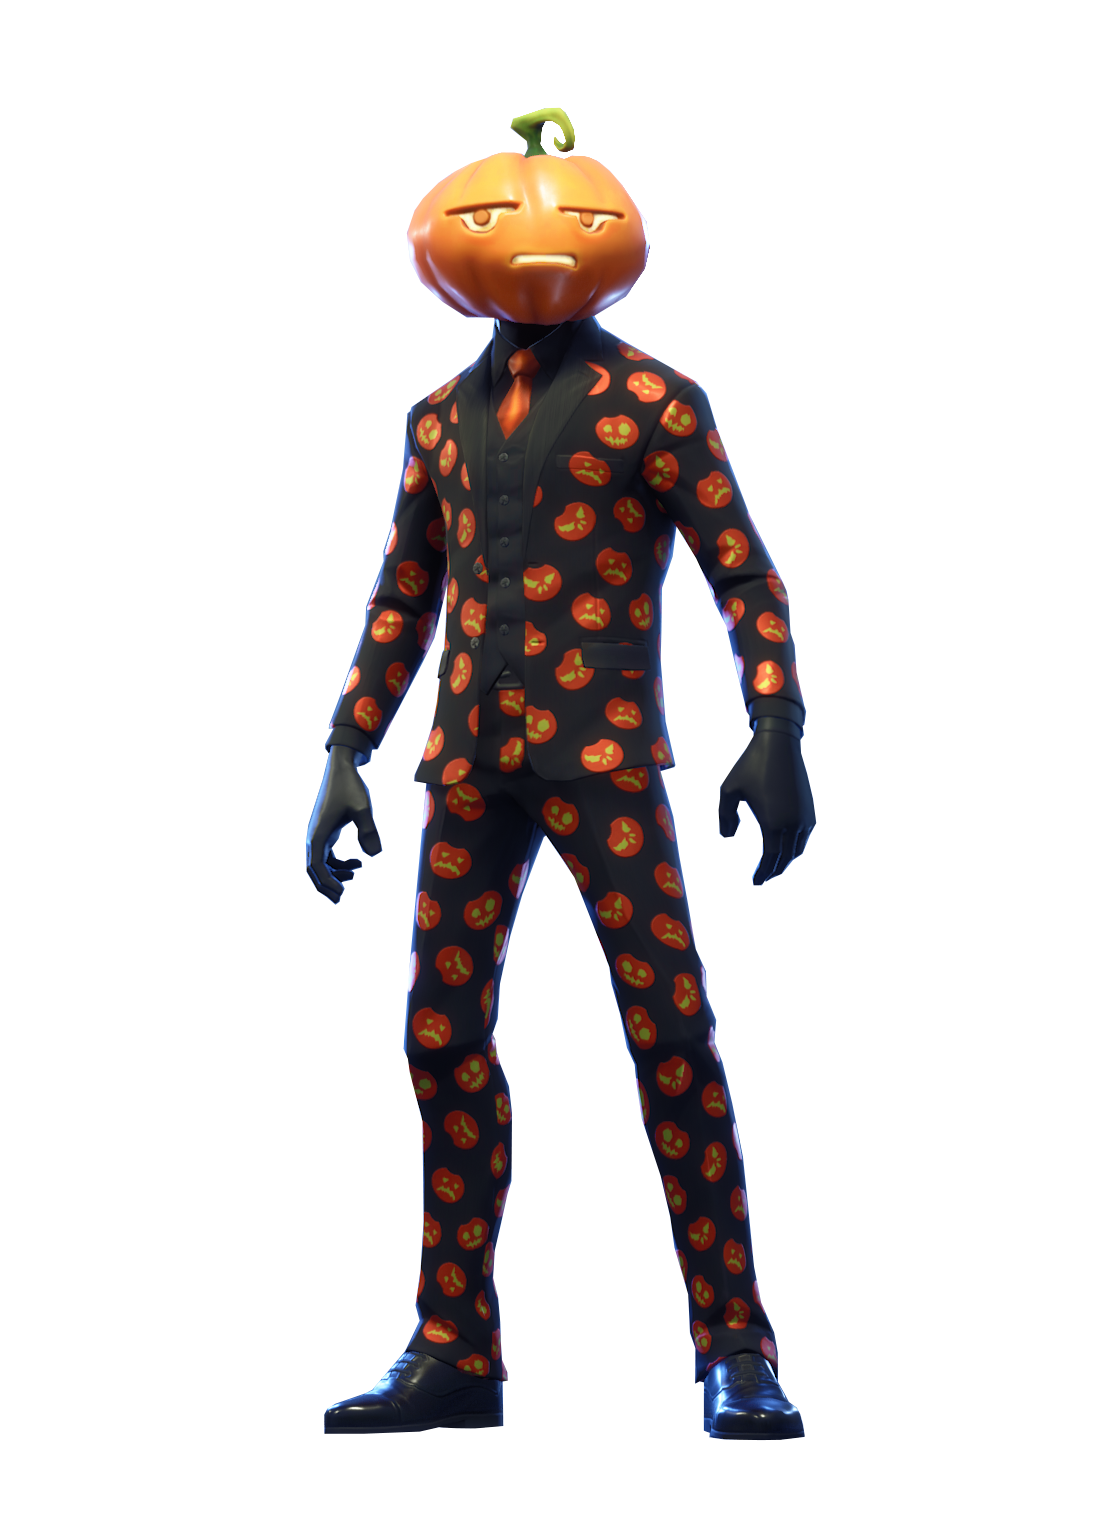 Jack Gourdon Fortnite Skin Full Body PNG Image.